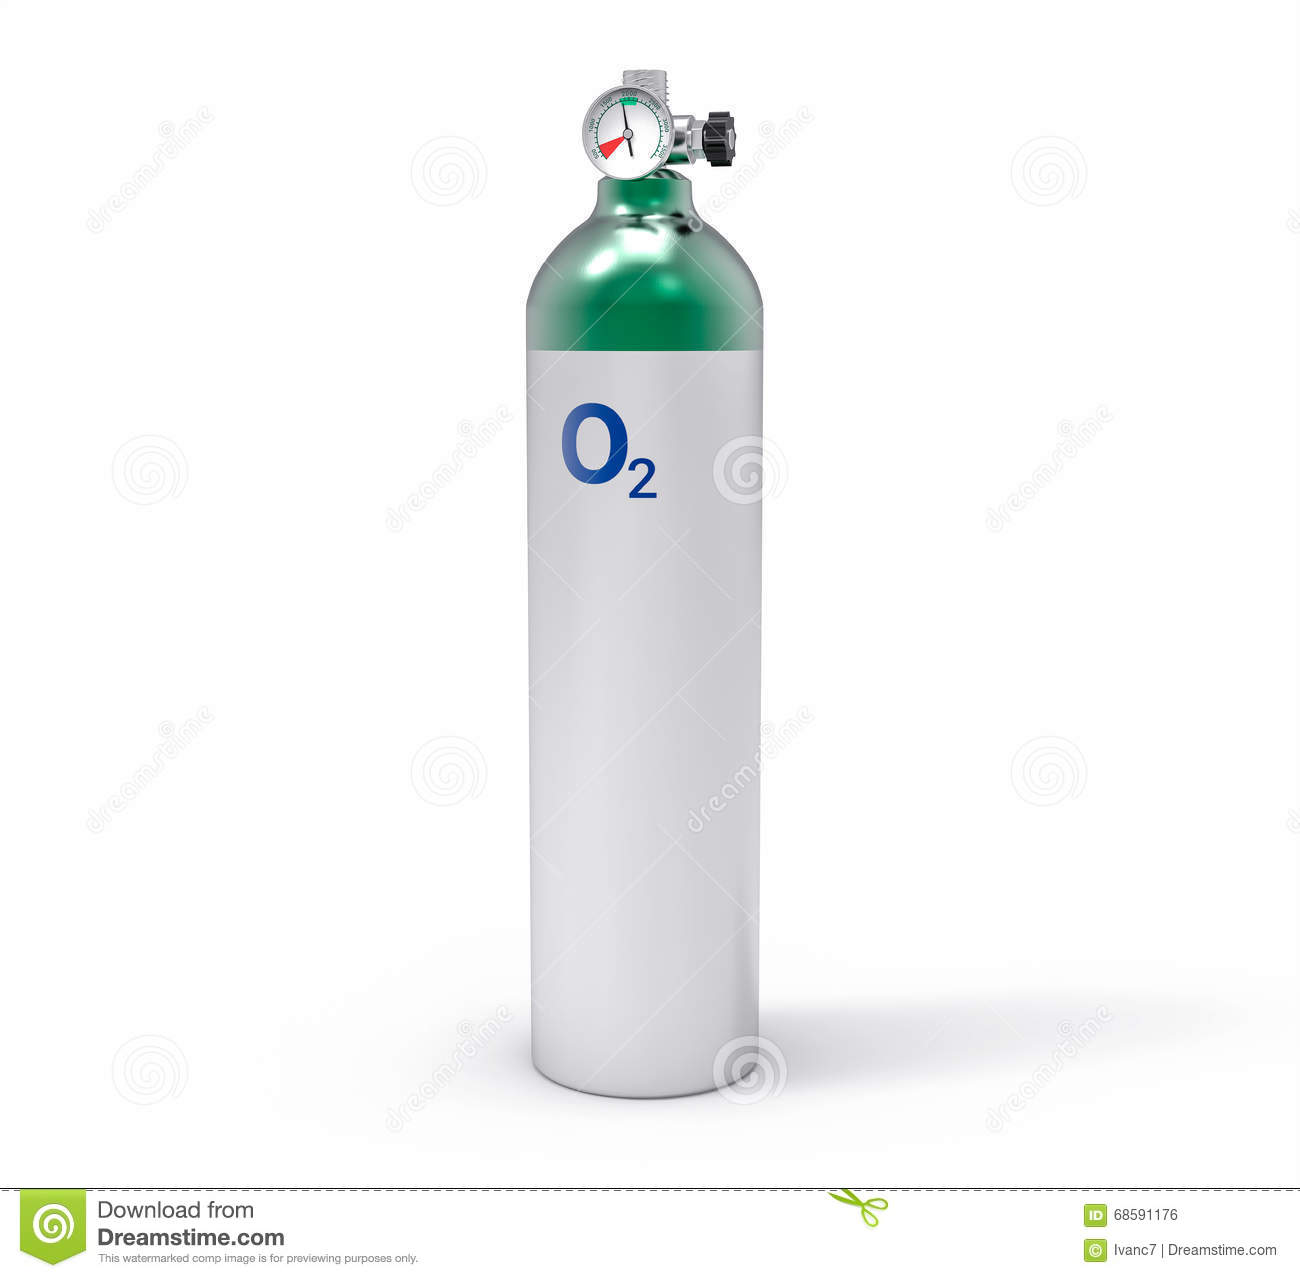 Story additionally Diving salesman additionally 1p221scieportolio blogspot as well The Fault In Our Stars Hazel Grace Lancaster 432695602 additionally Oxygen tank. on cartoon oxygen tank